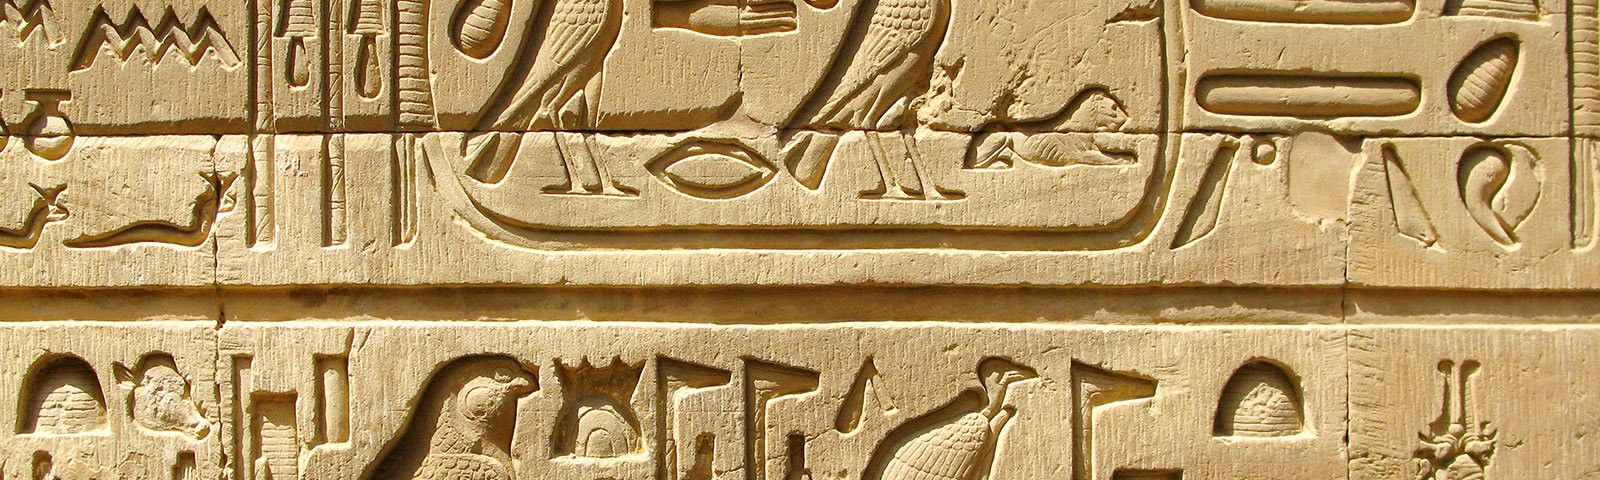 An area of a stone carving of ancient Egyptian hieroglyphs chiselled with great care and precision. The symbols shown are presented in two rows separated by a line. Some symbols are within a rounded-off box as if for emphasis.